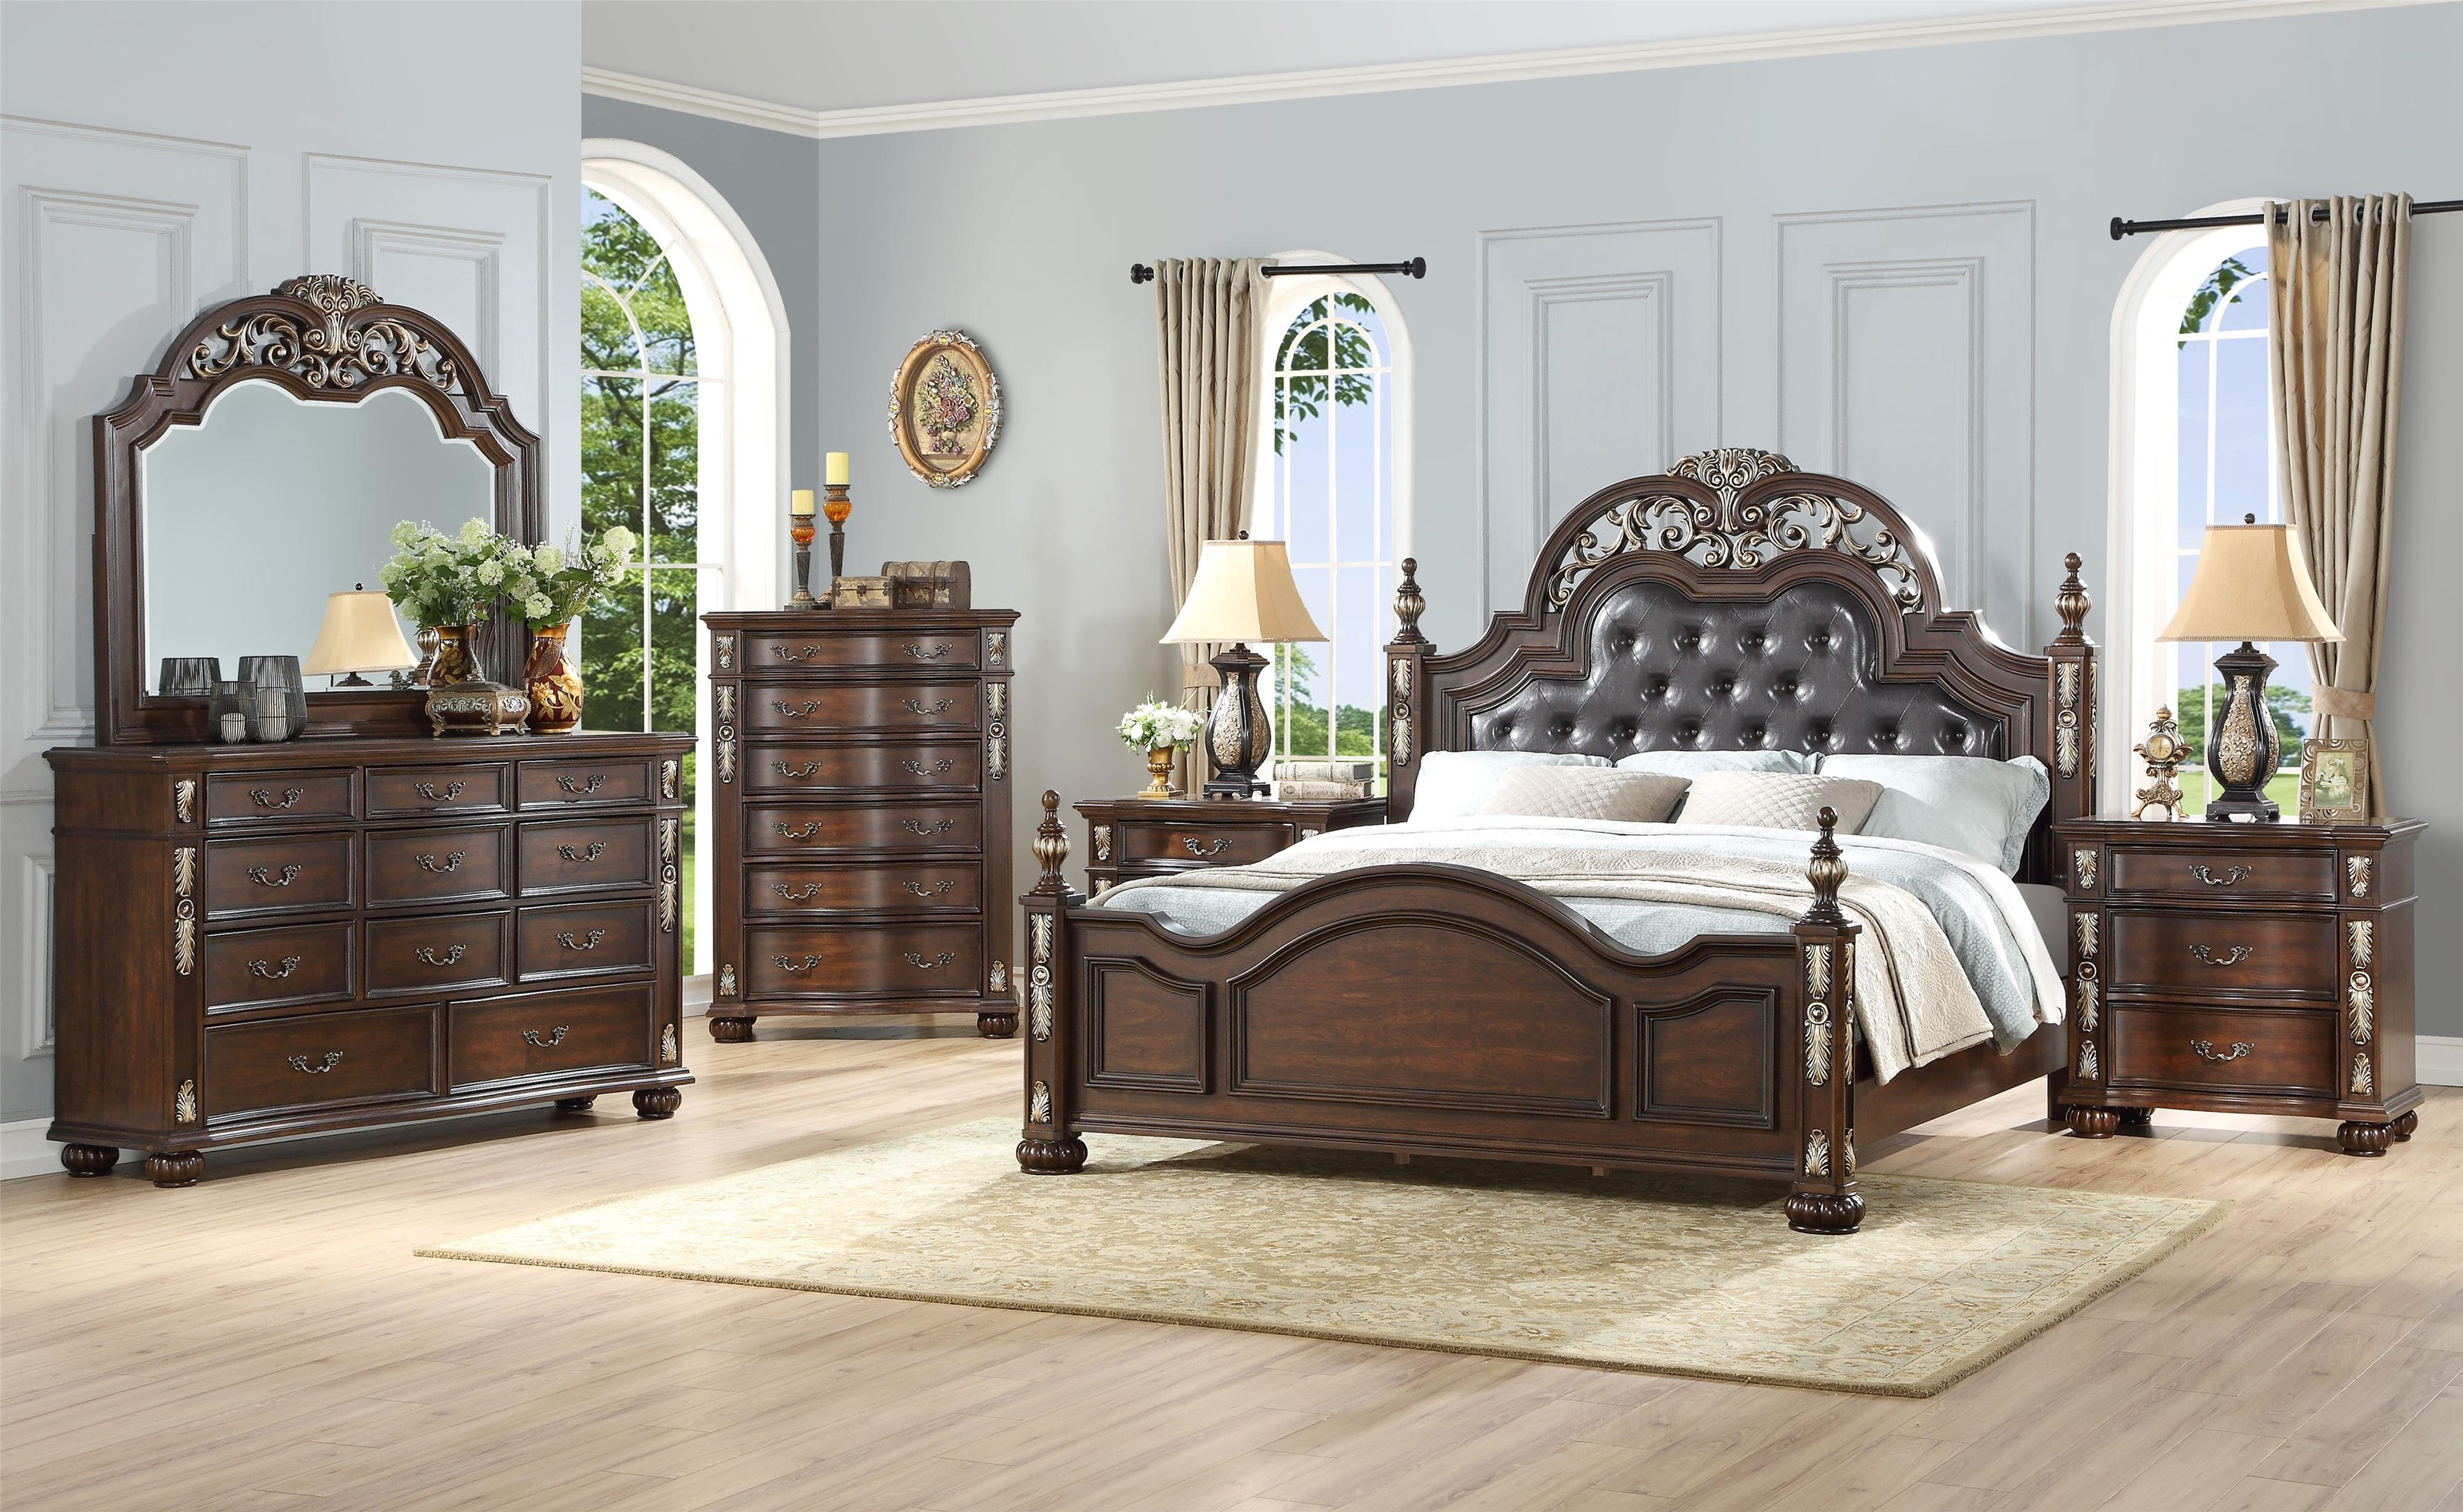 Maximus Cal King Bedroom Group by New Classic at Beck's Furniture